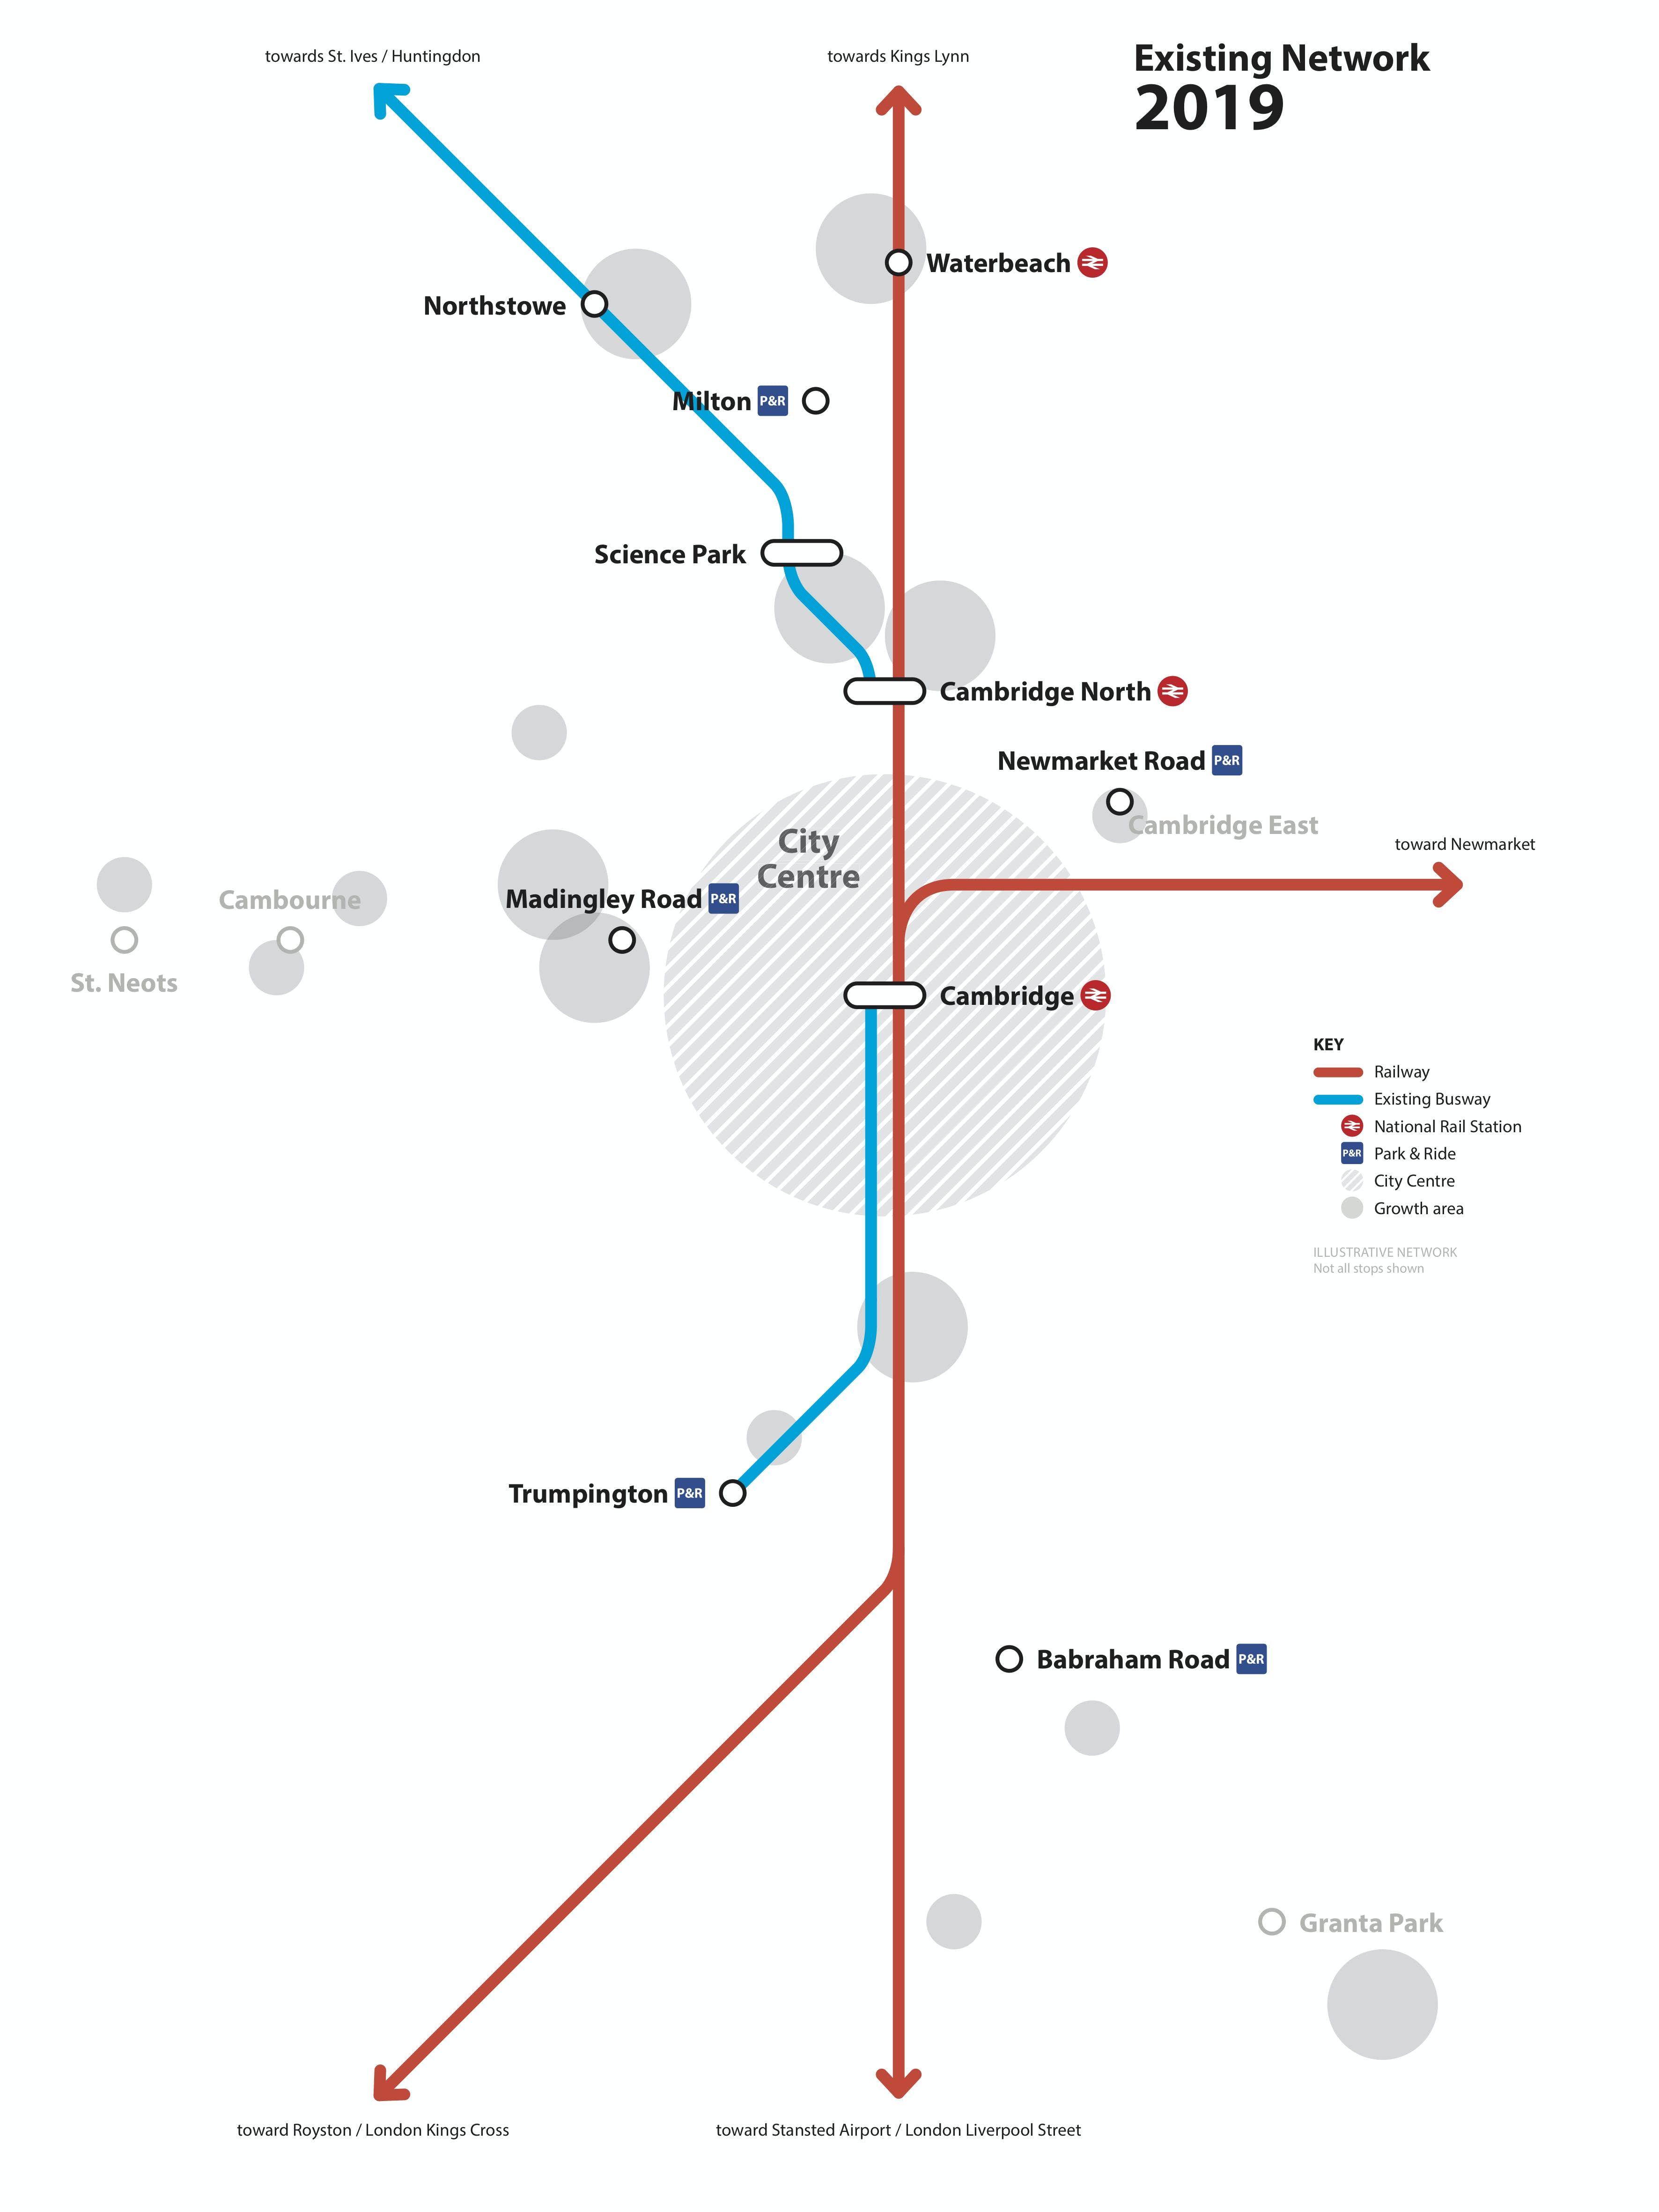 Existing GCP Network 2019 Transport Map